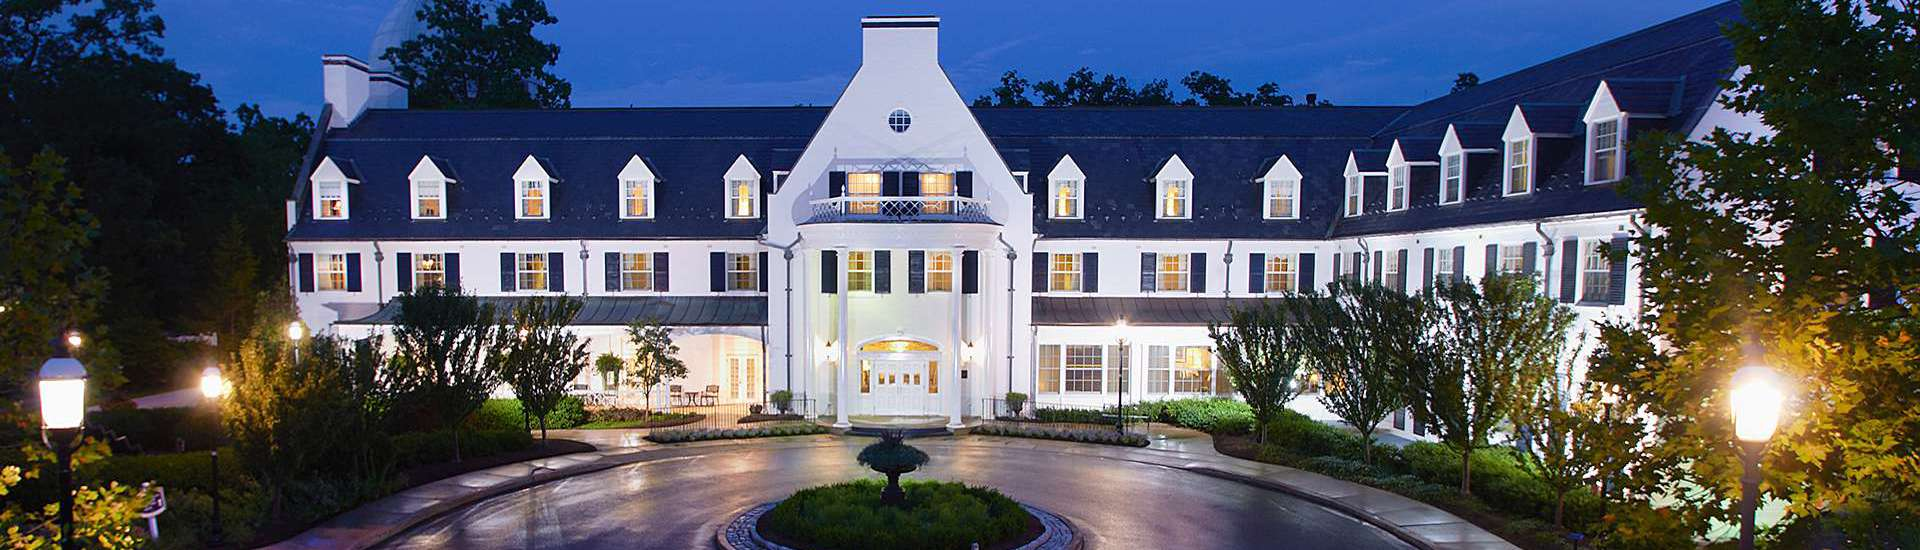 The Nittany Lion Inn Official Site Luxury Hotel In State College Pa